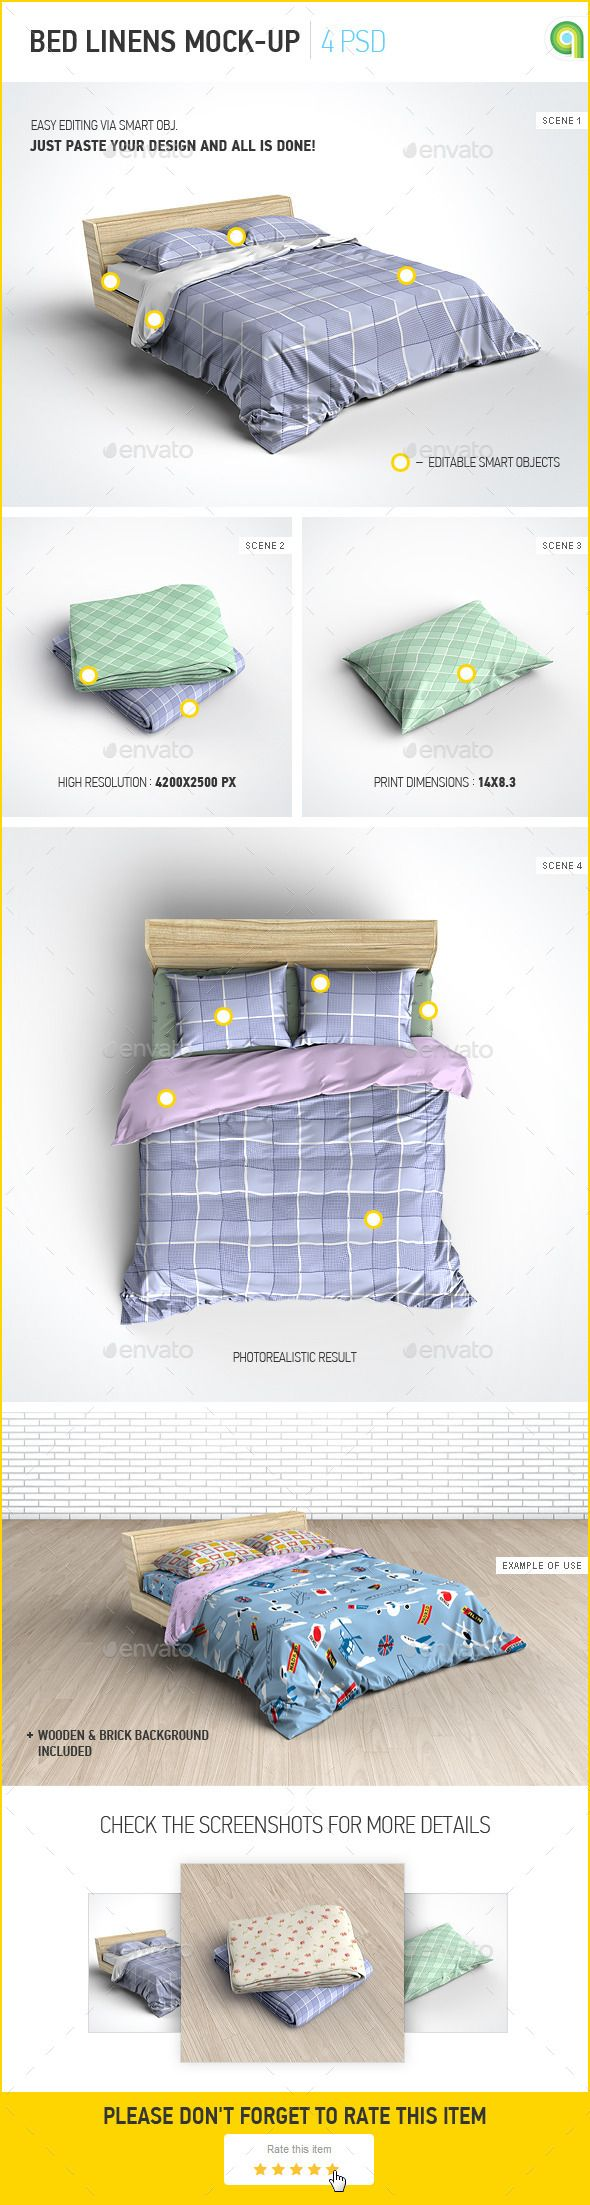 Bed Linens Mock-Up / Bedding Set Template | Buy and Download: http://graphicriver.net/item/bed-linens-mockup-bedding-set-template/9774753?ref=ksioks